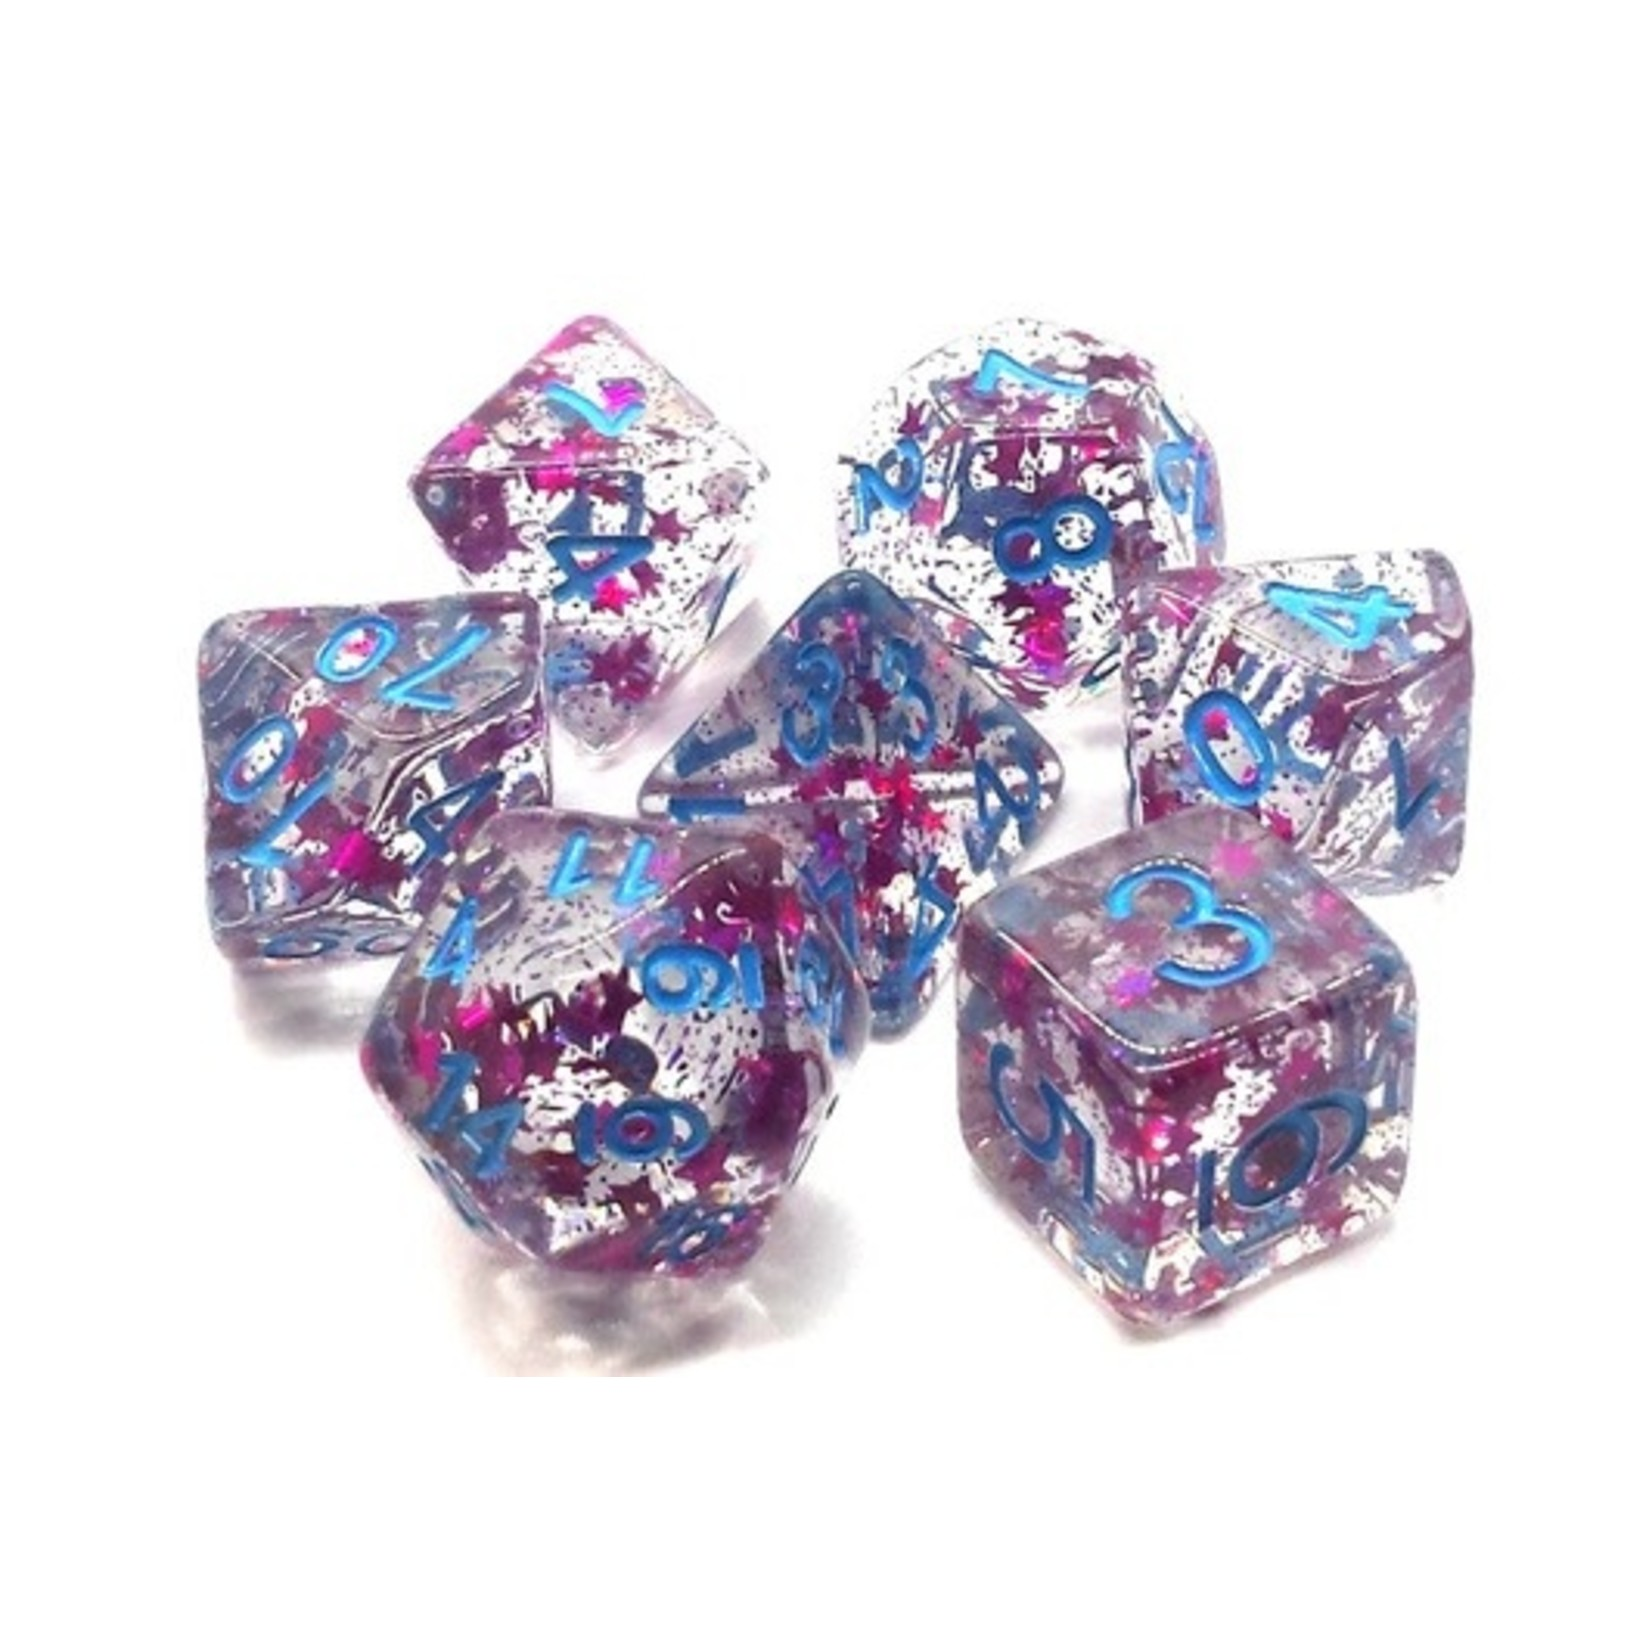 Old School 7 Piece Dice Set: Infused - Red Stars w/ Blue